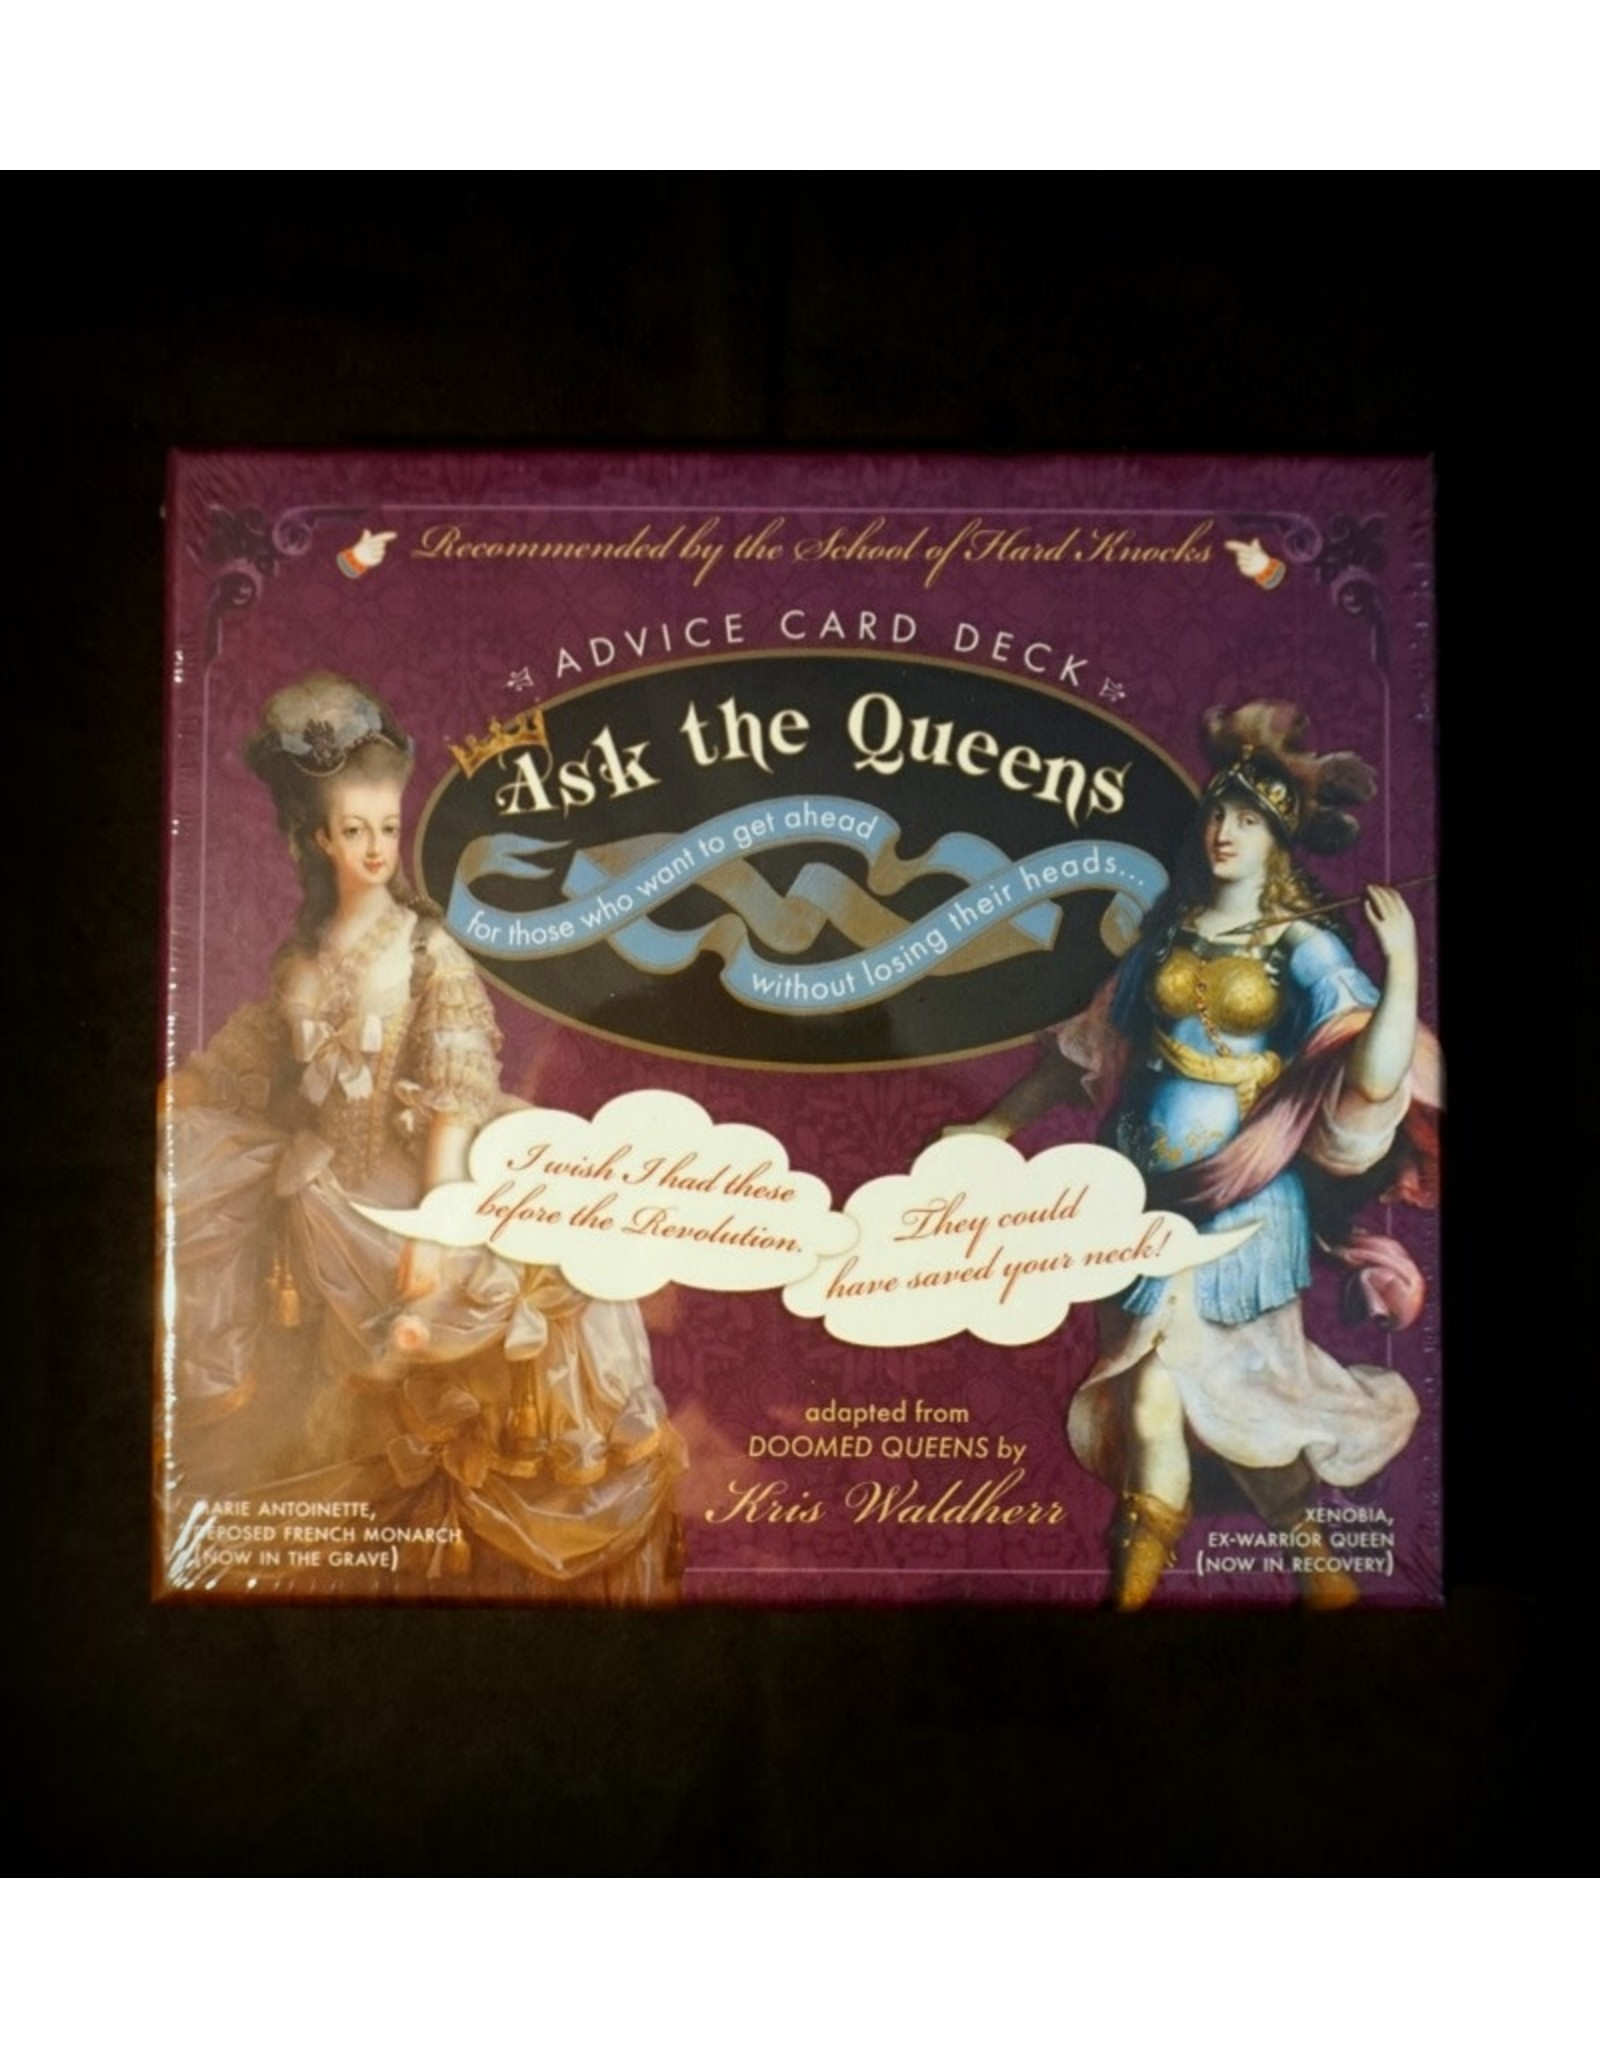 Ask the Queens Advice Card Deck